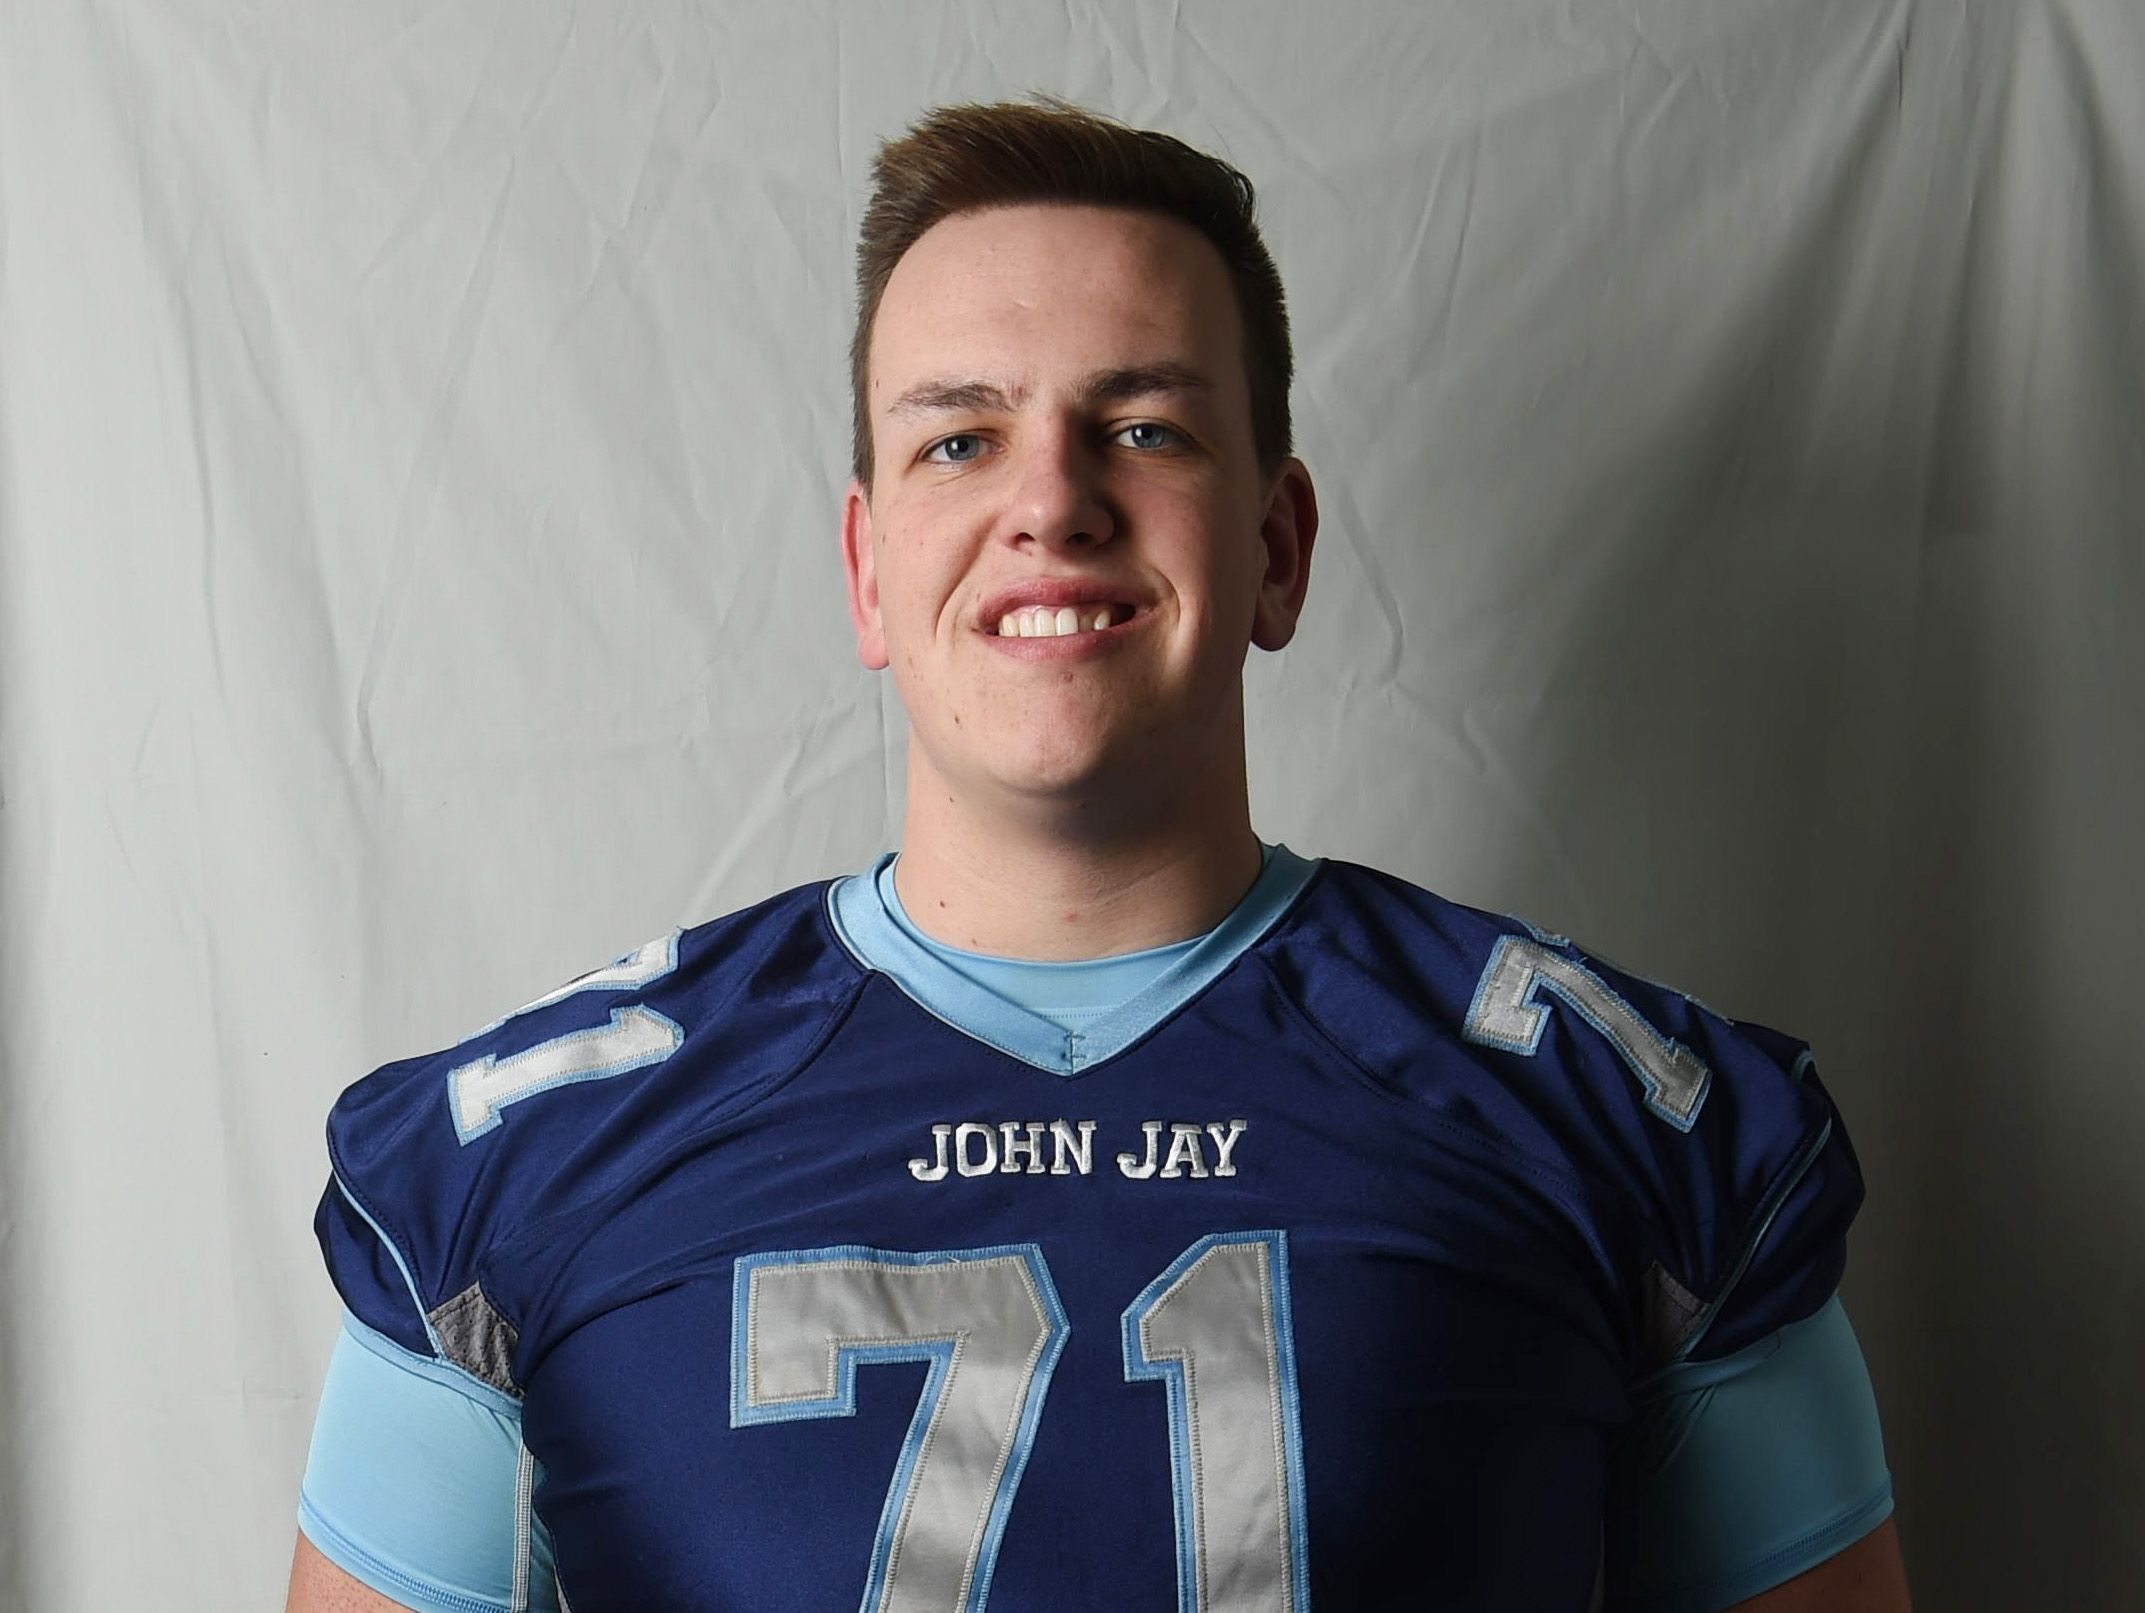 John Ryan from John Jay High School is the Offensive Lineman of the Year.